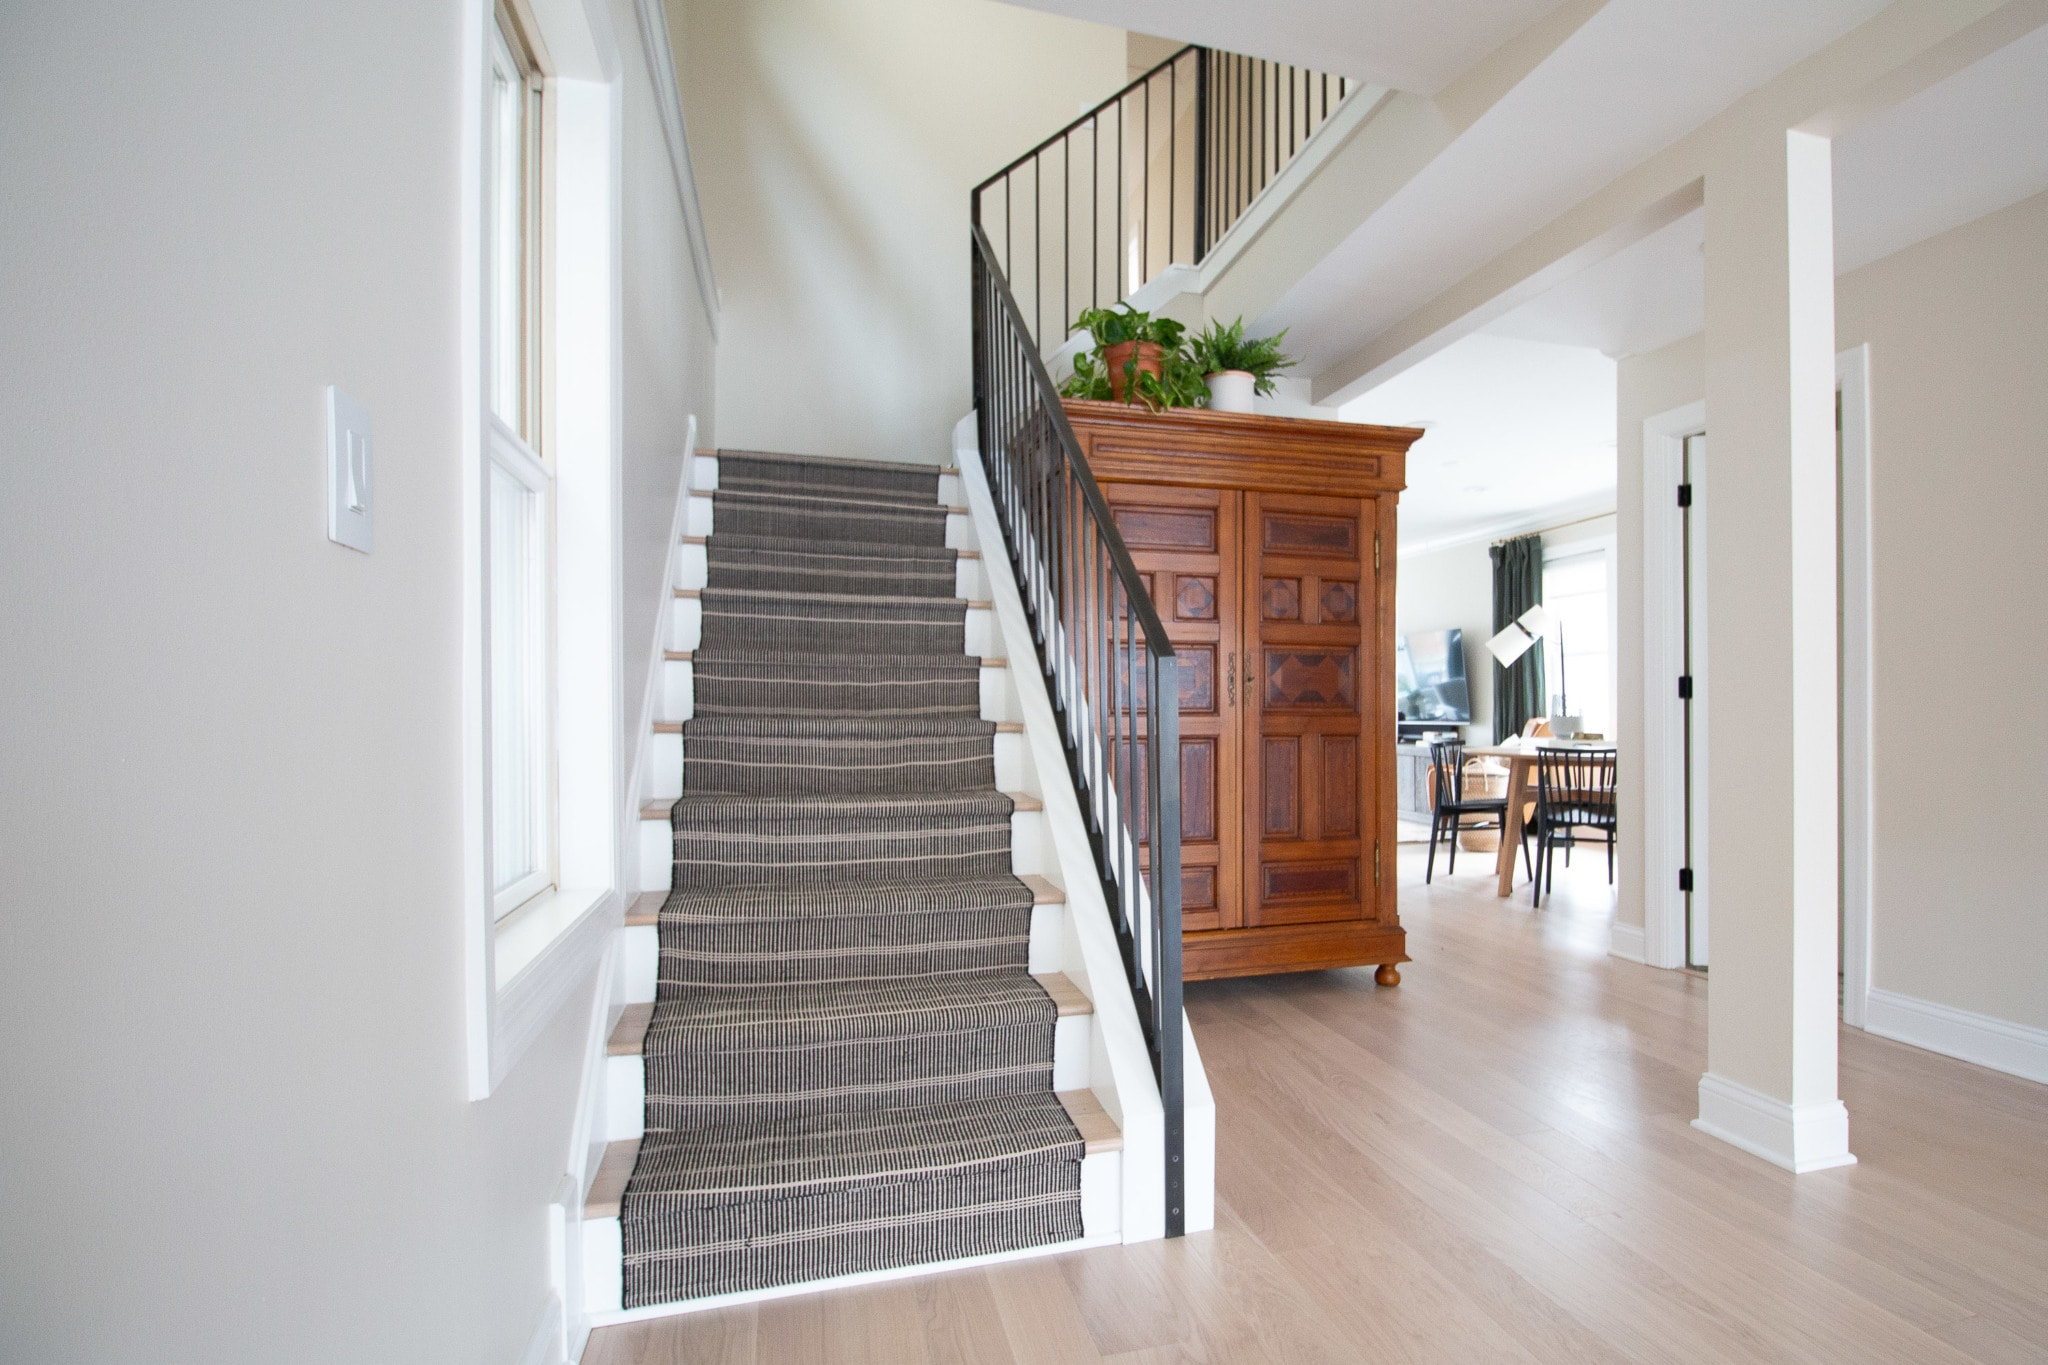 Tips to install a stair runner